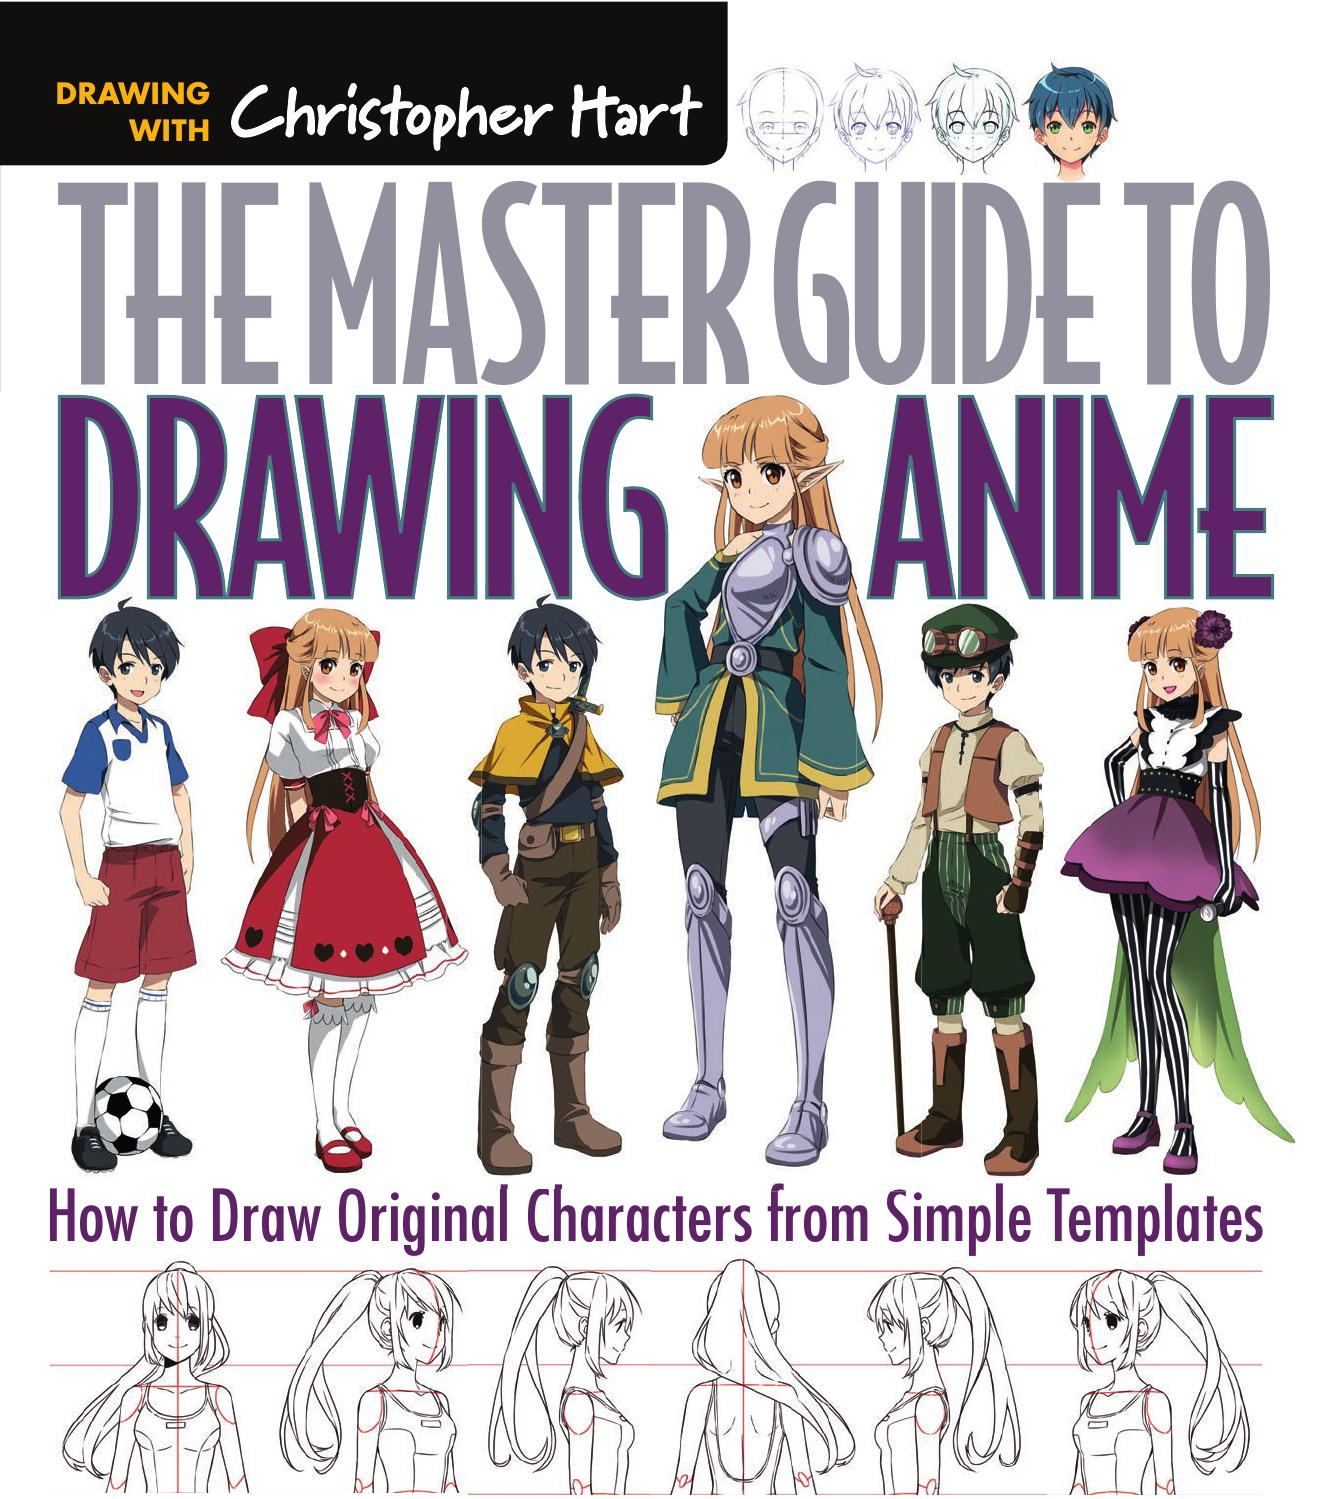 Cartooning The Ultimate Character Design Book Download : The master guide to drawing anime how draw original